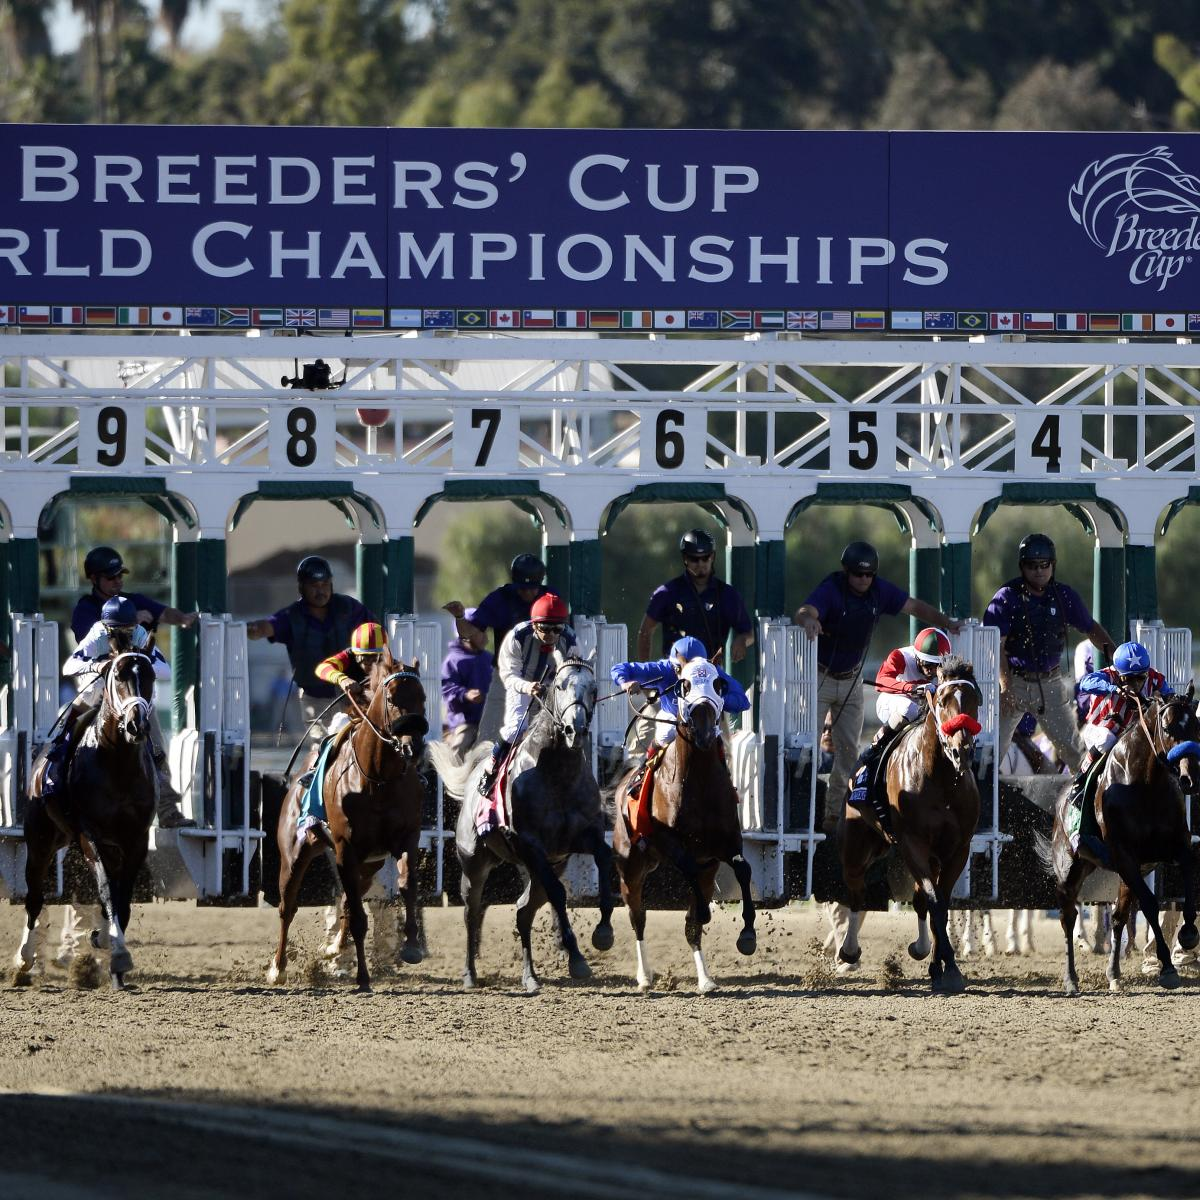 Breeders Cup 2014 Odds And Predictions For All Races